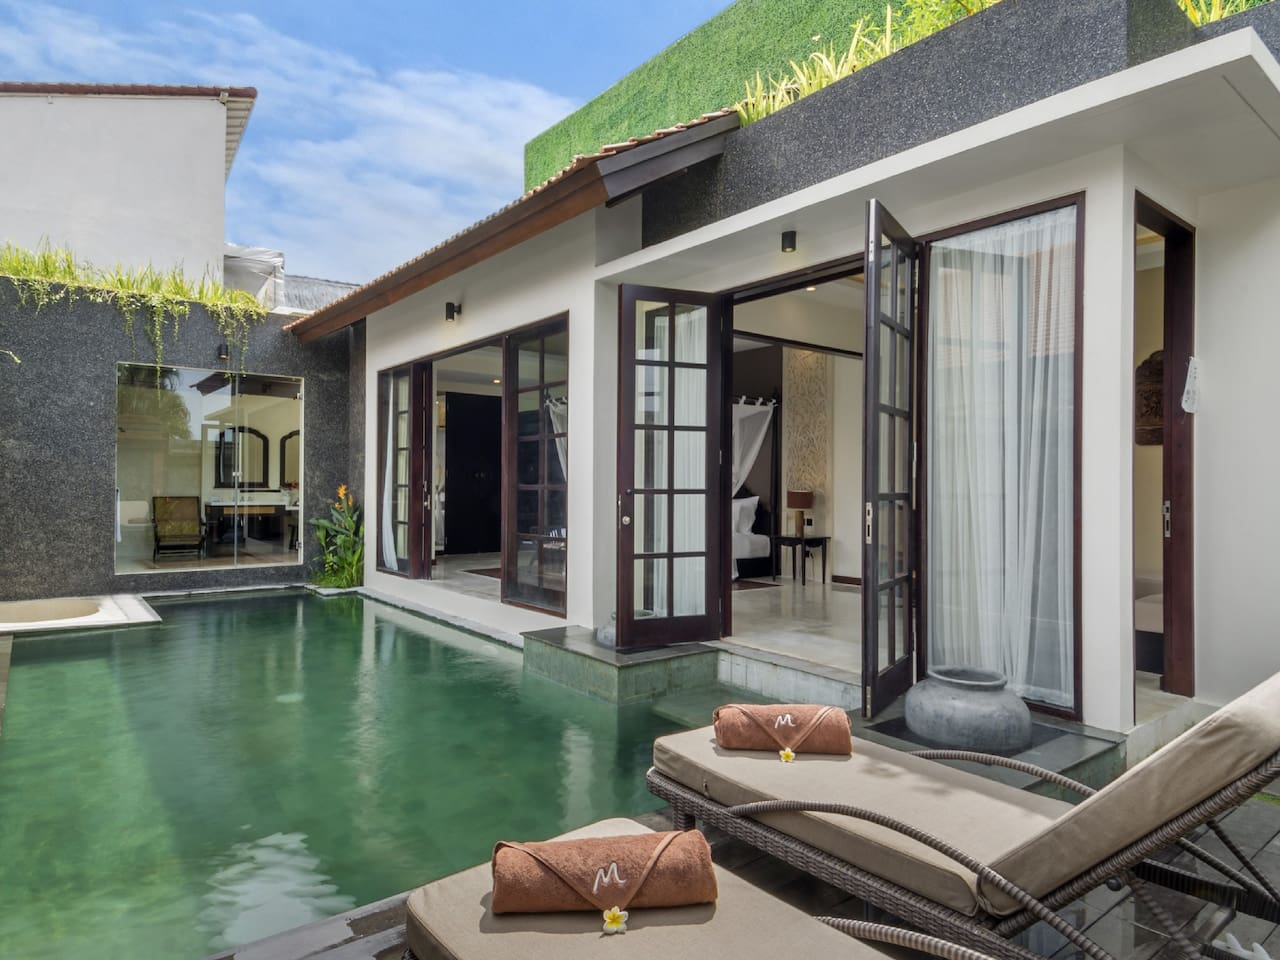 Enjoy a swim in your own private pool ... step out of bed and jump in!